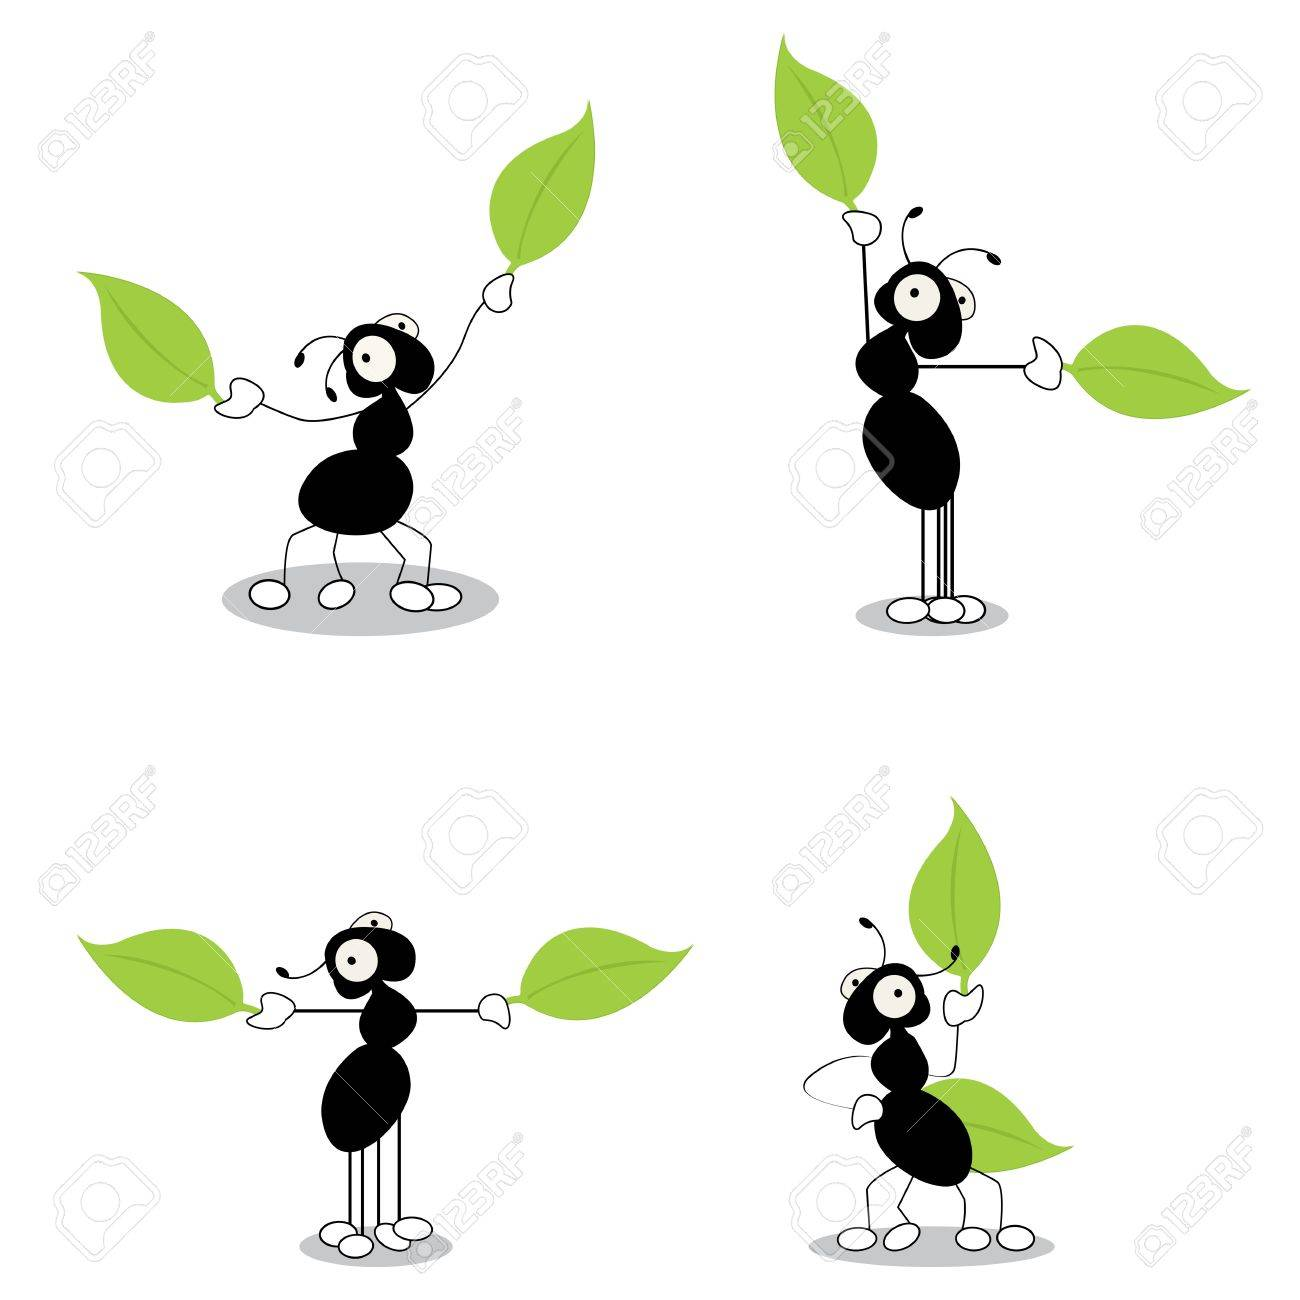 Directing traffic, conceptual cartoon action characters of ants dirrecting traffic with leaves. Isolated and grouped objects over white background. Stock Vector - 10854692